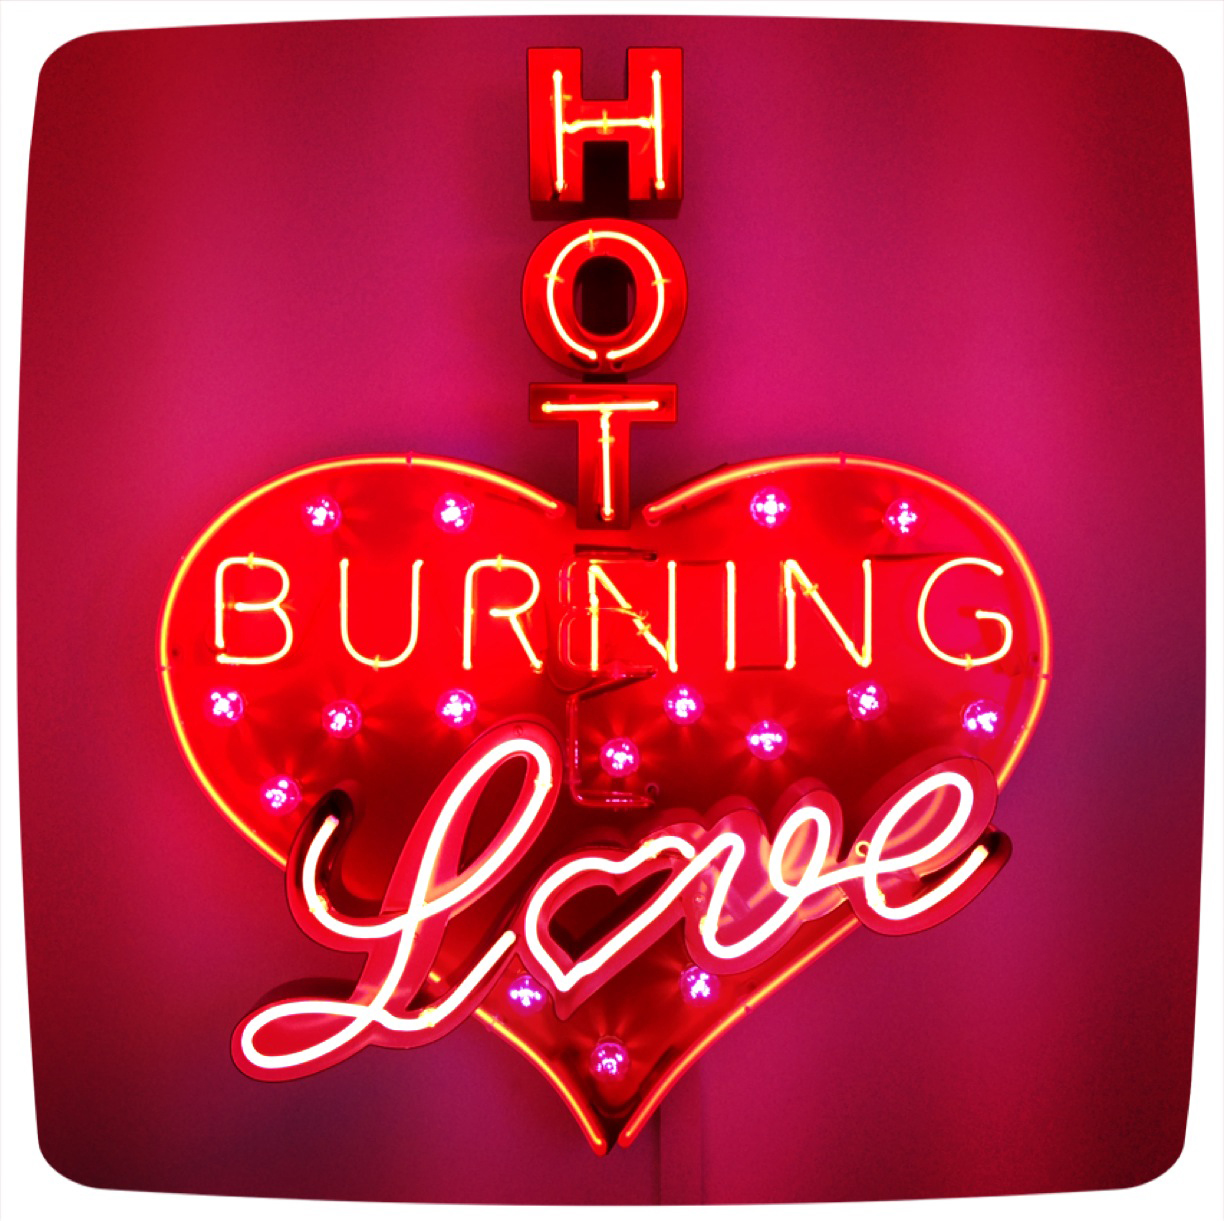 Hot Burning Love - Chris Bracey